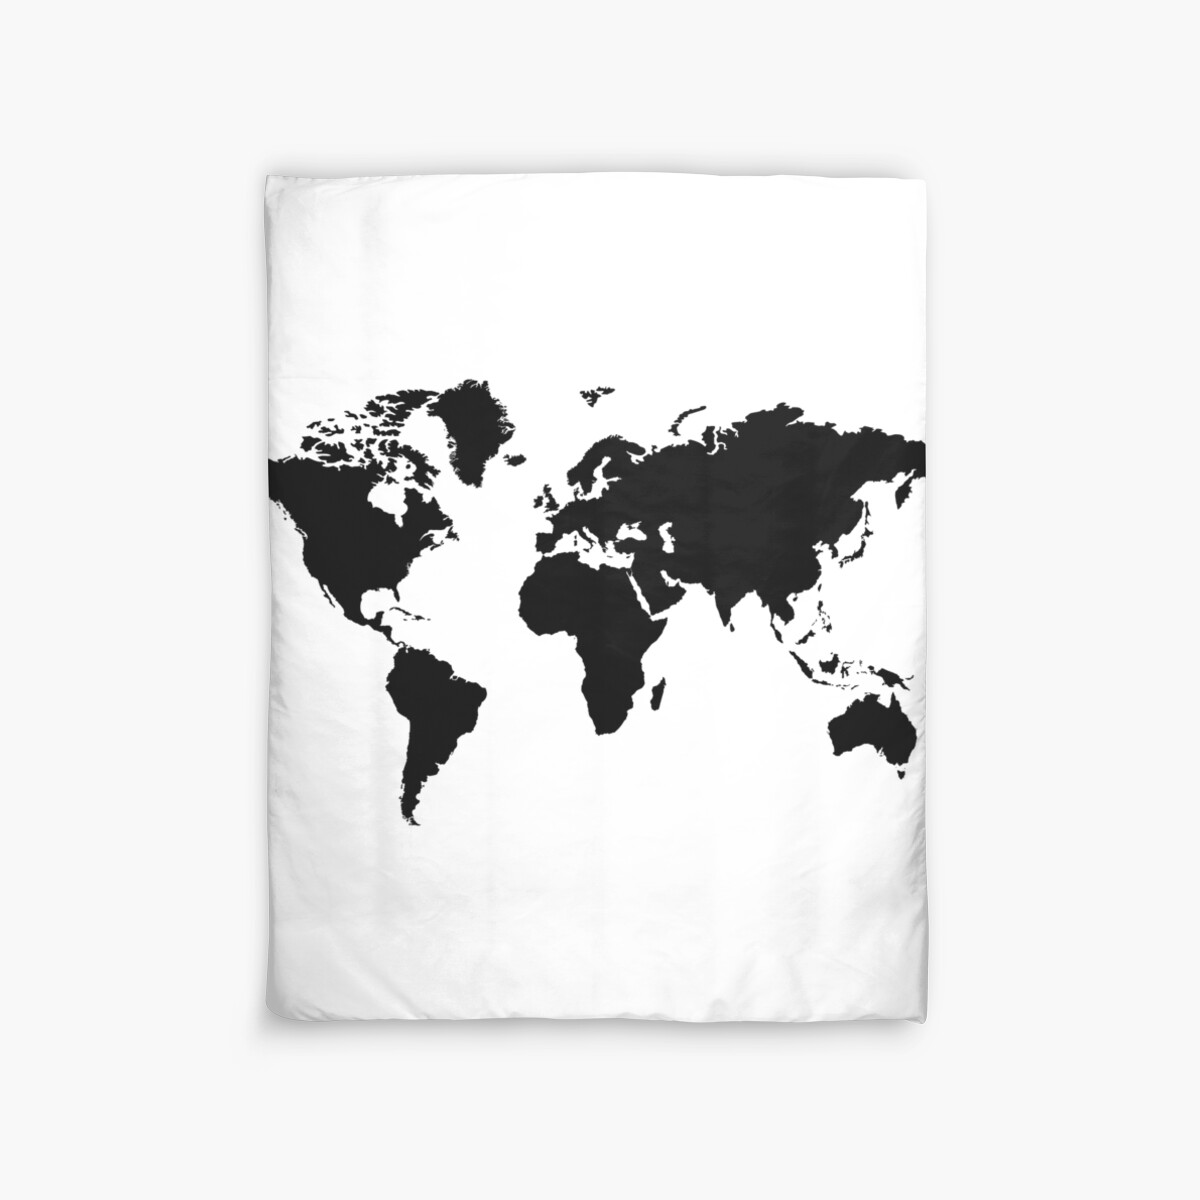 Black and white world map duvet covers by haroulita redbubble black and white world map by haroulita gumiabroncs Images